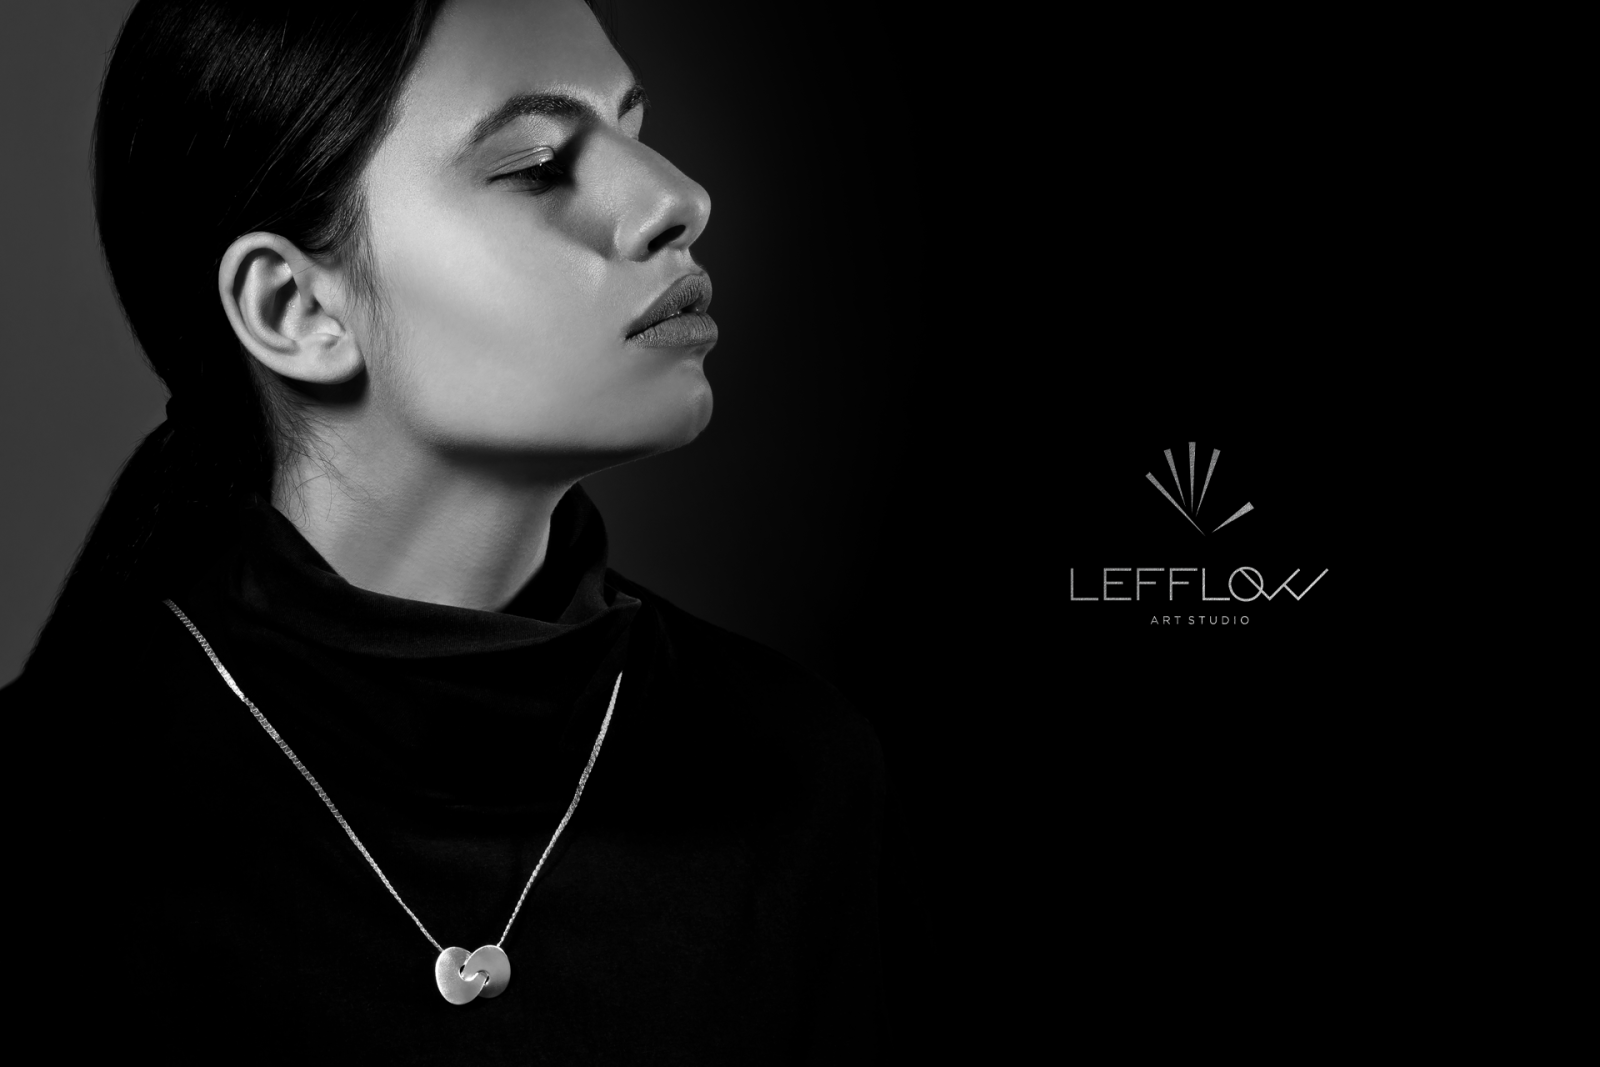 lefflow-lookbook-intro